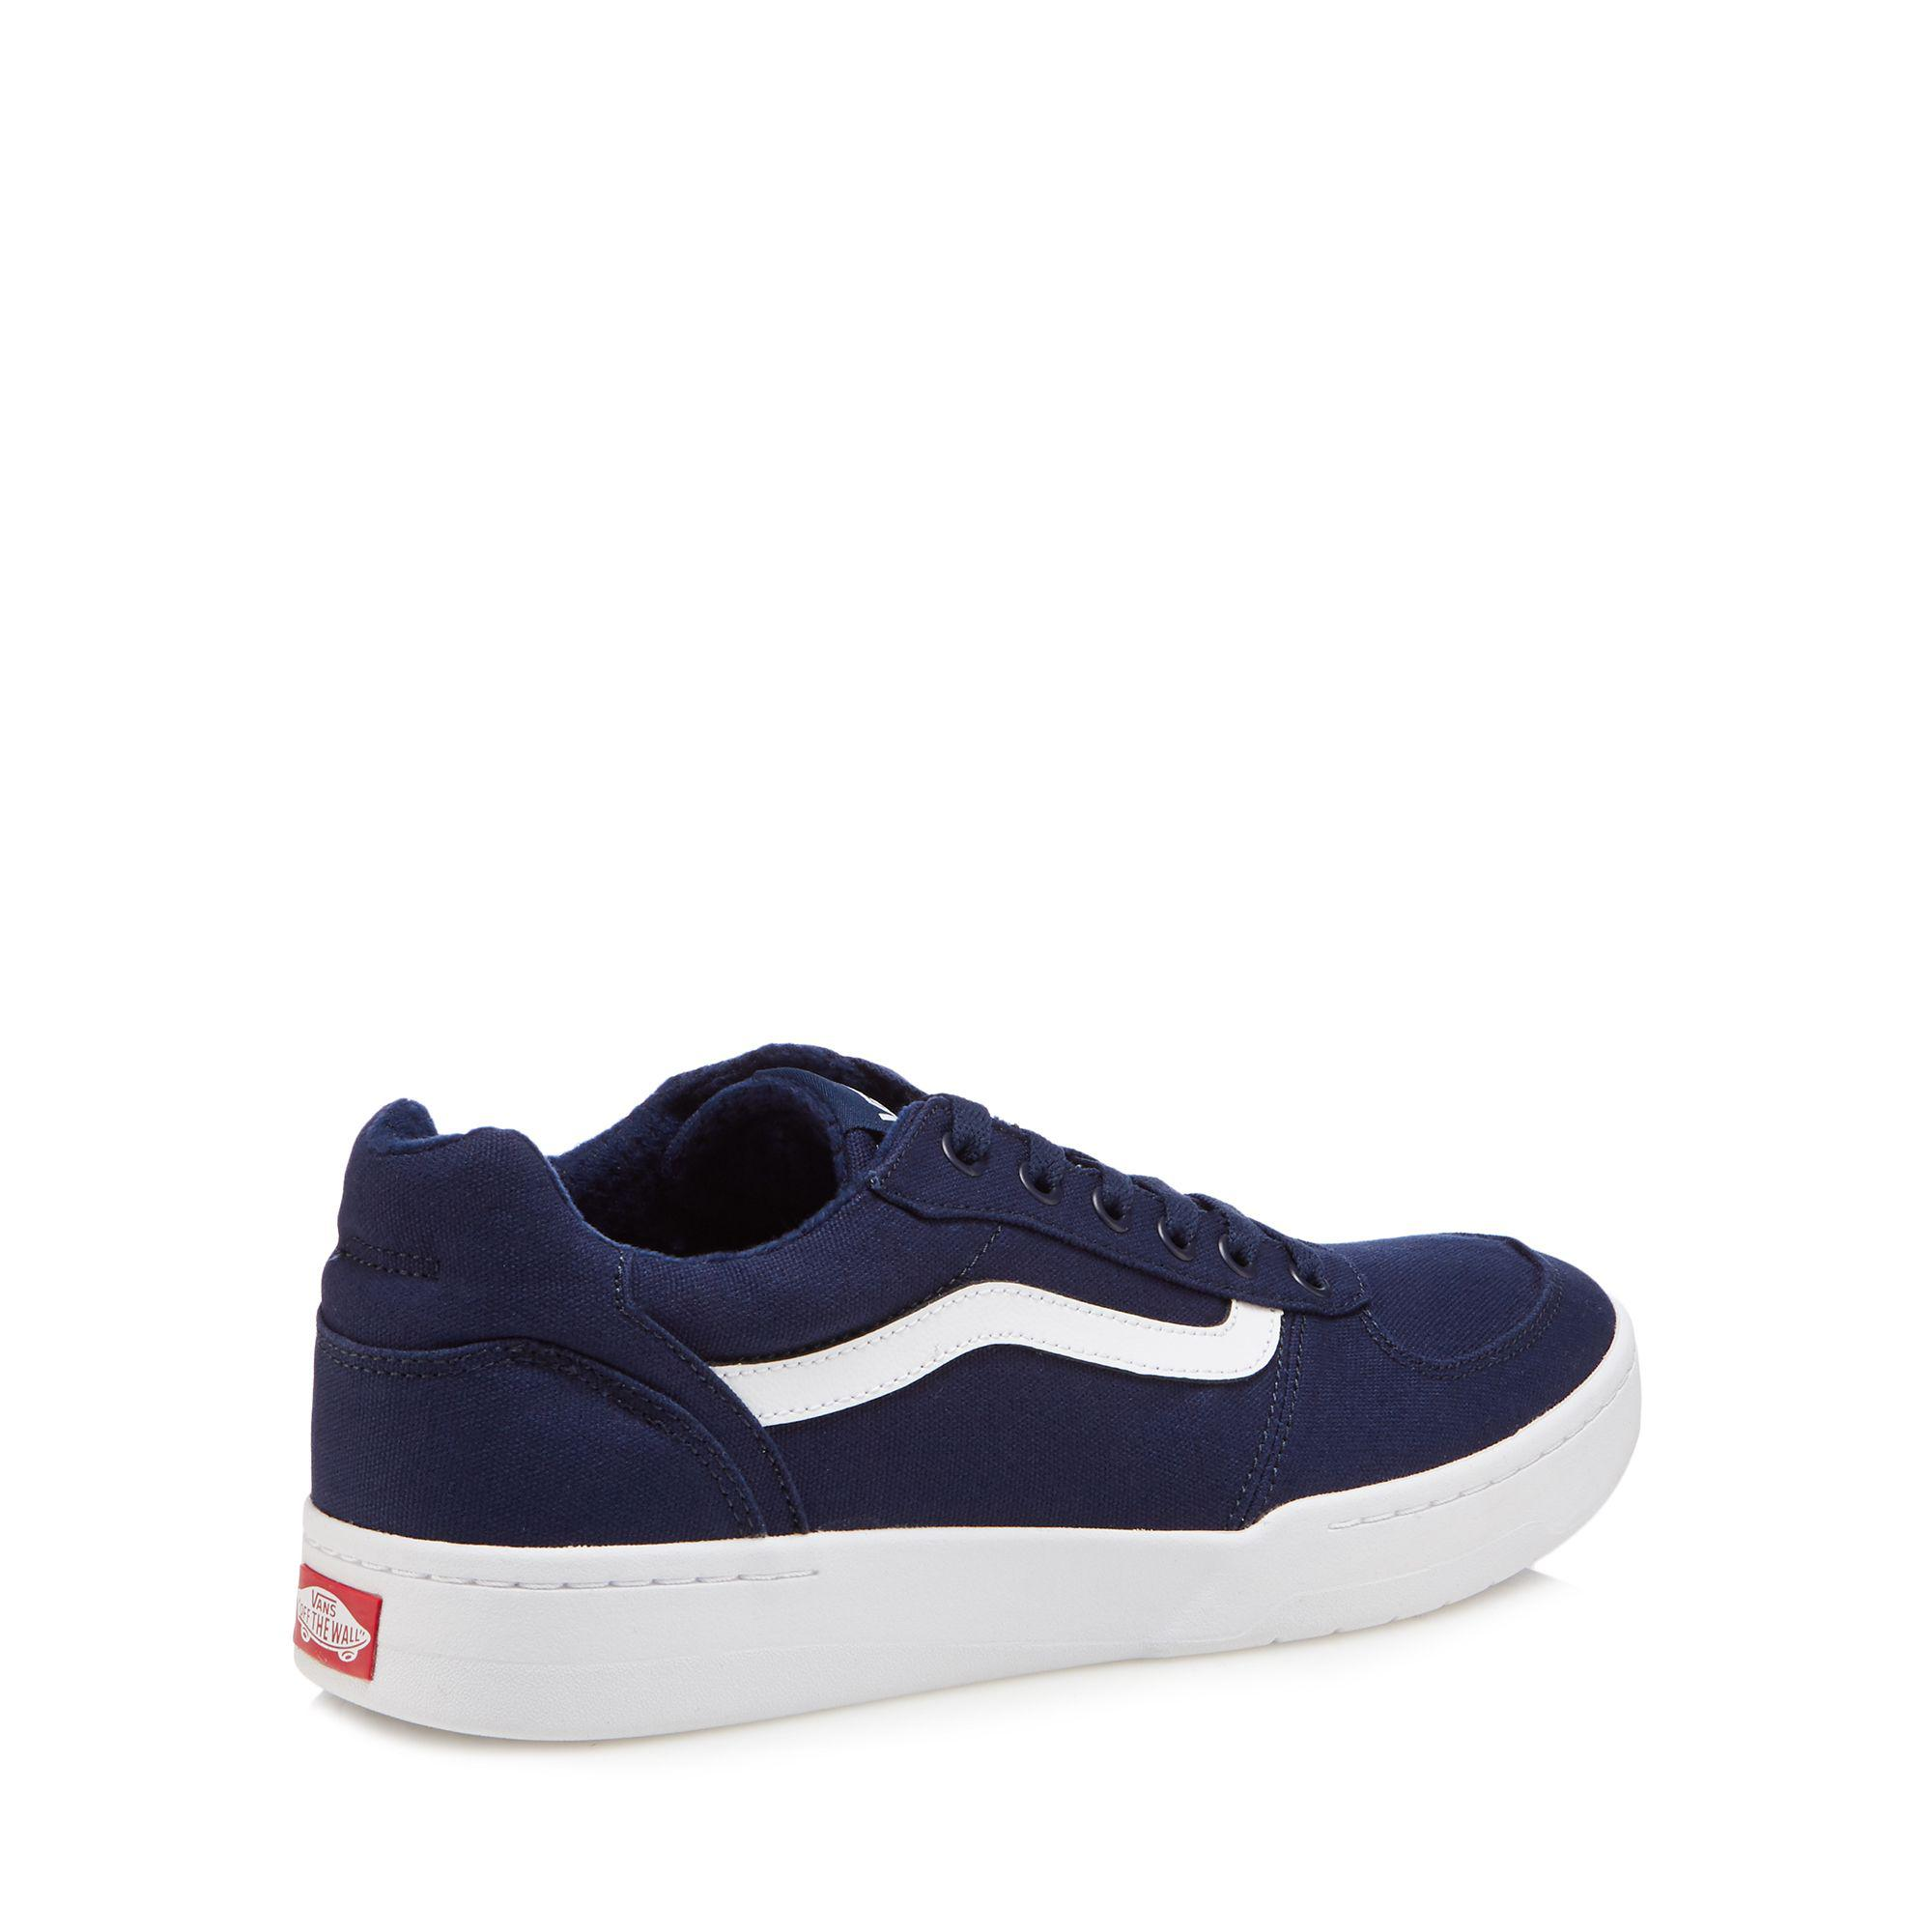 Navy 'Knoll' trainers shop online free shipping real cheap with credit card buy cheap choice 5yTur2L29M